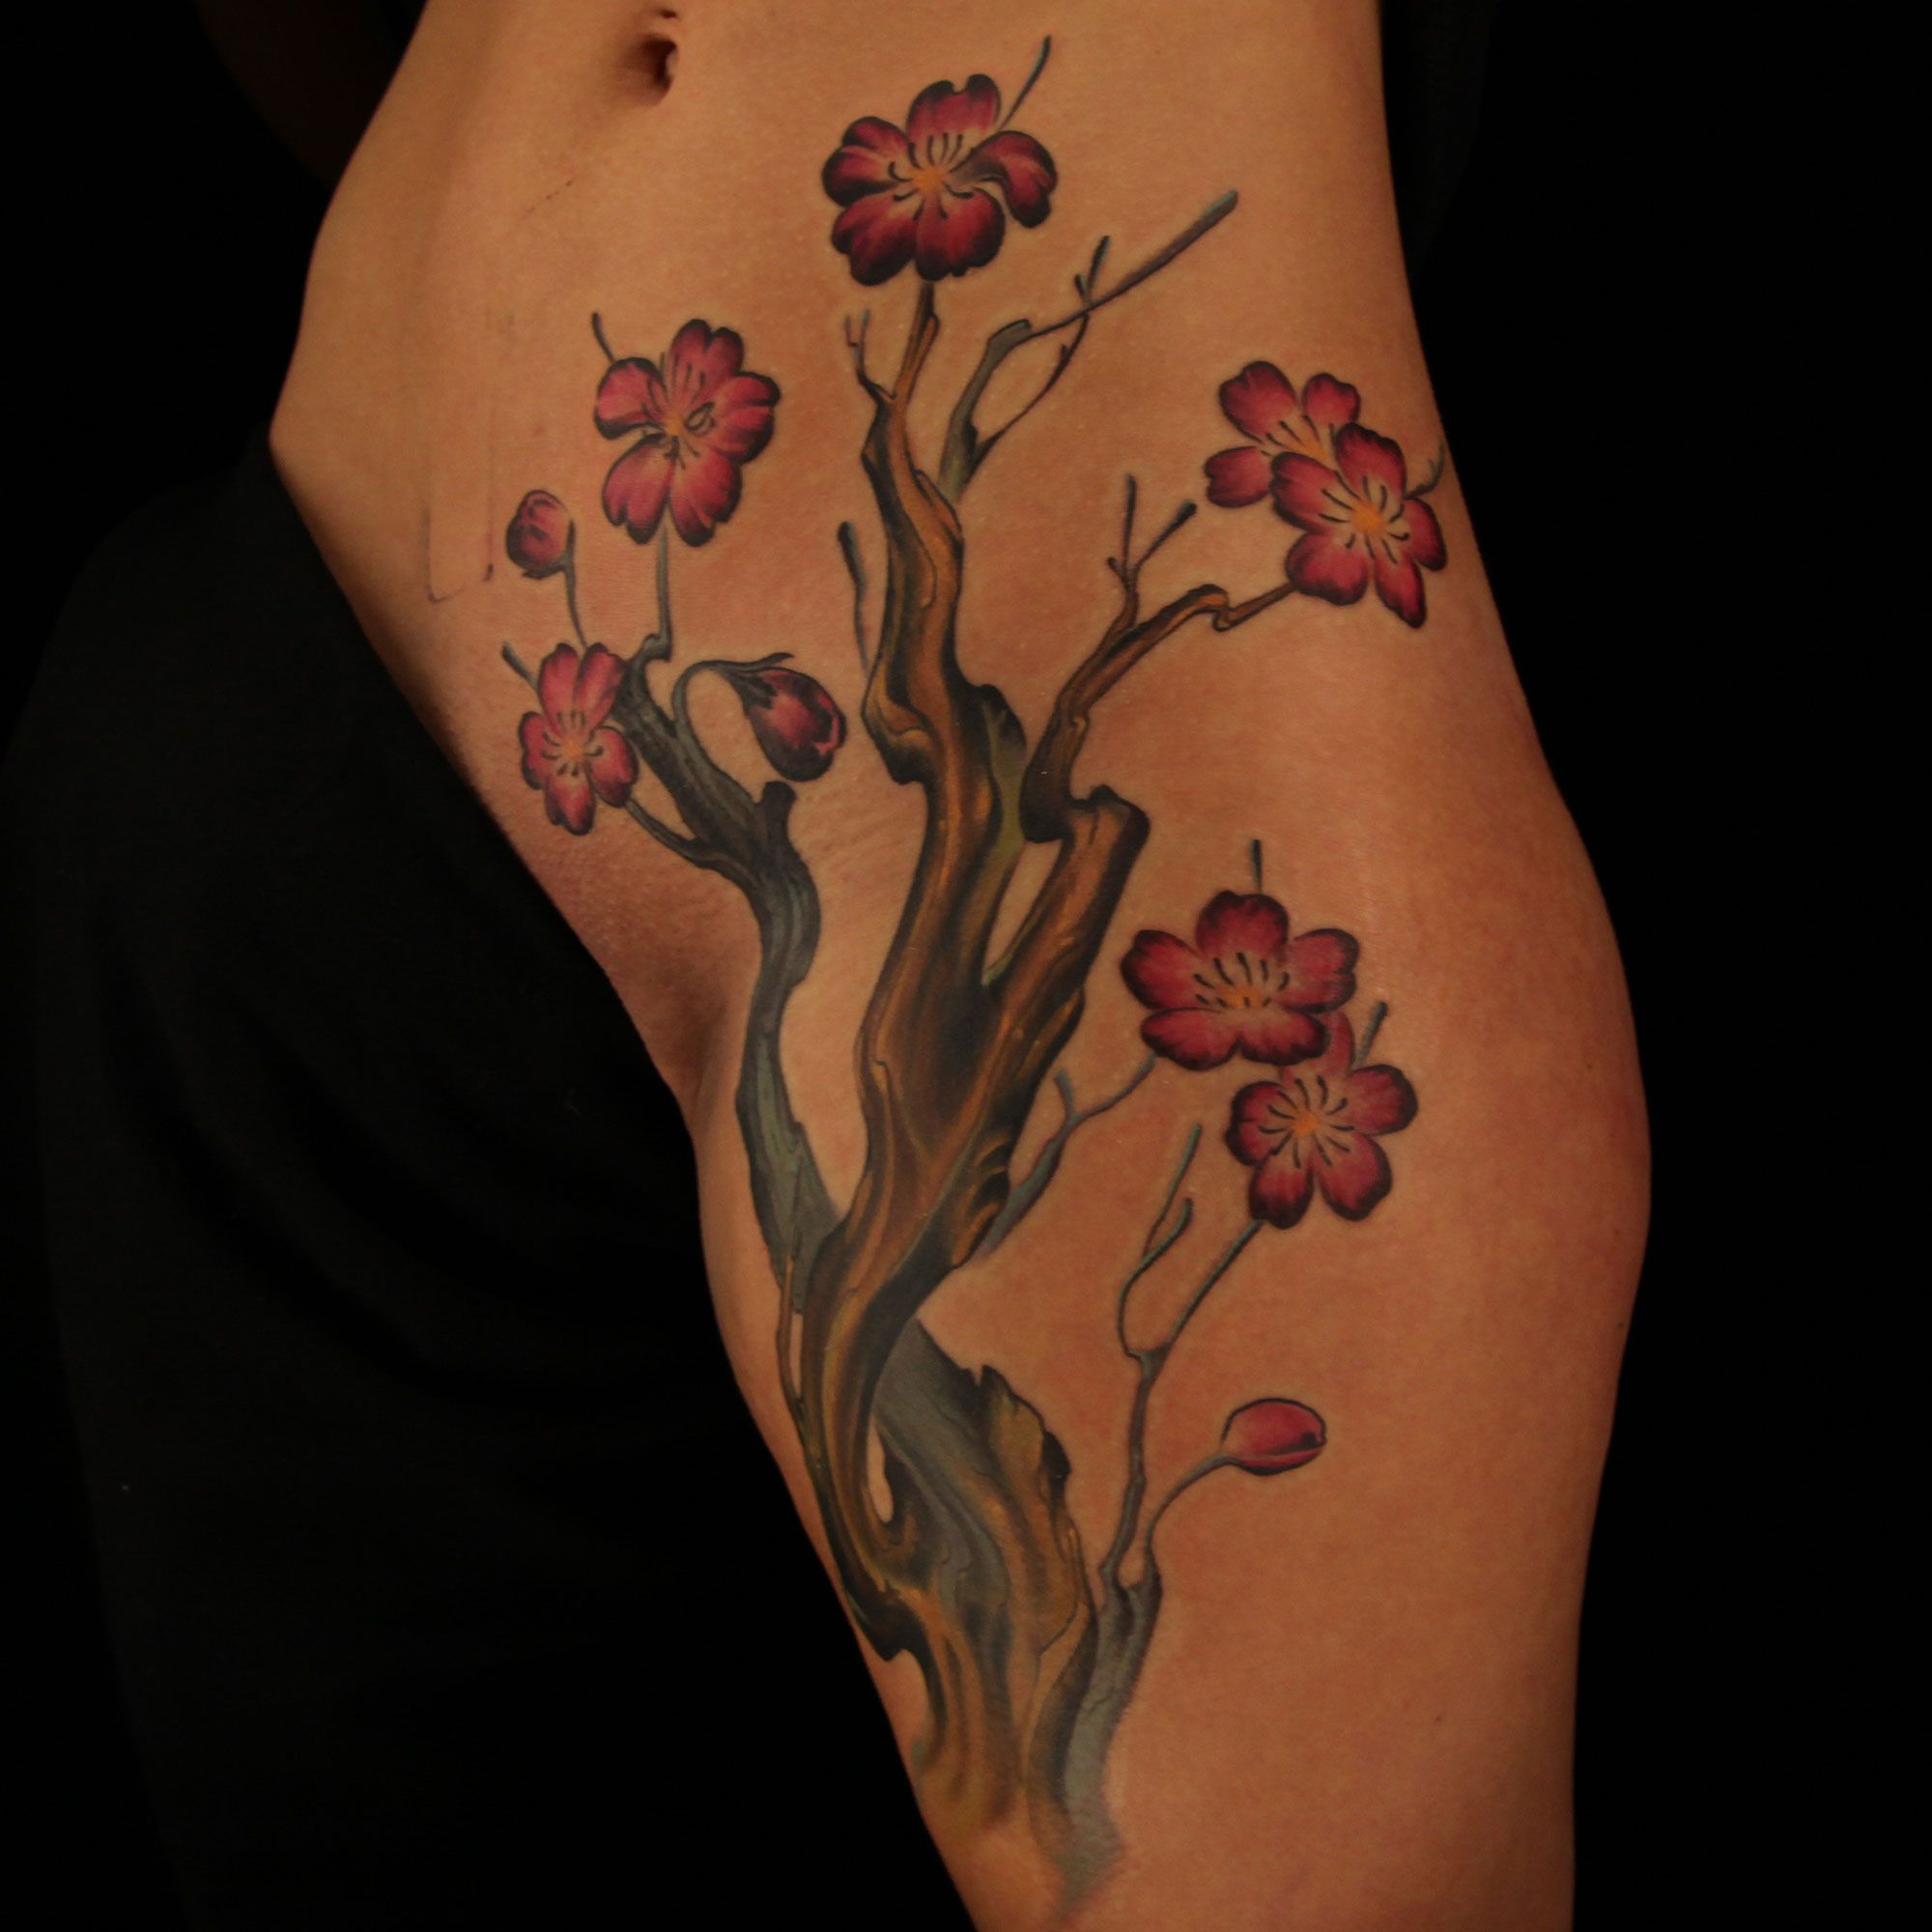 Cherry Blossom Cover Up Tattoo By Tattoo Artist Kyle Dunbar From